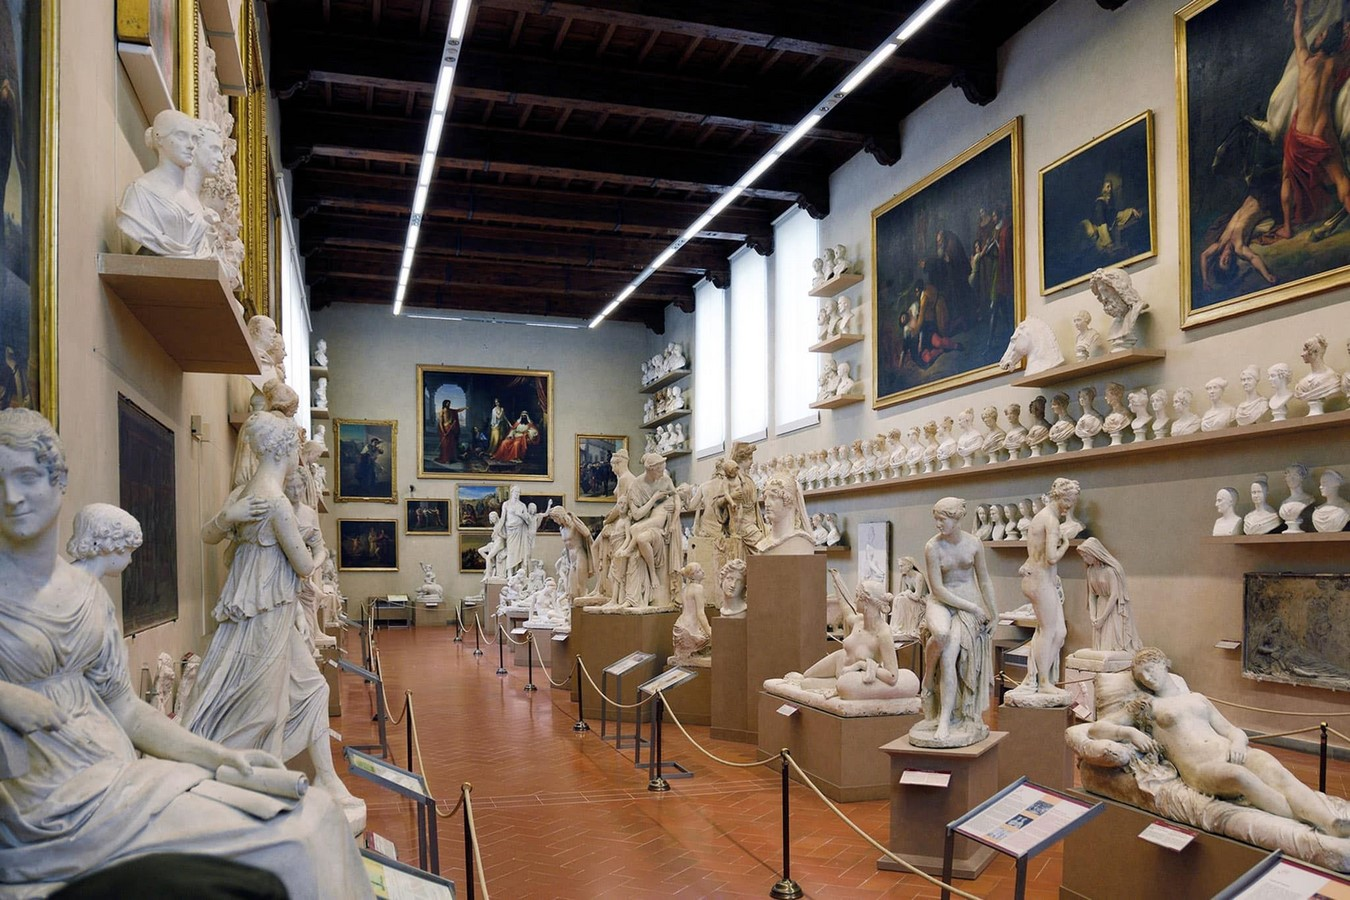 Accademia Gallery - Sheet1